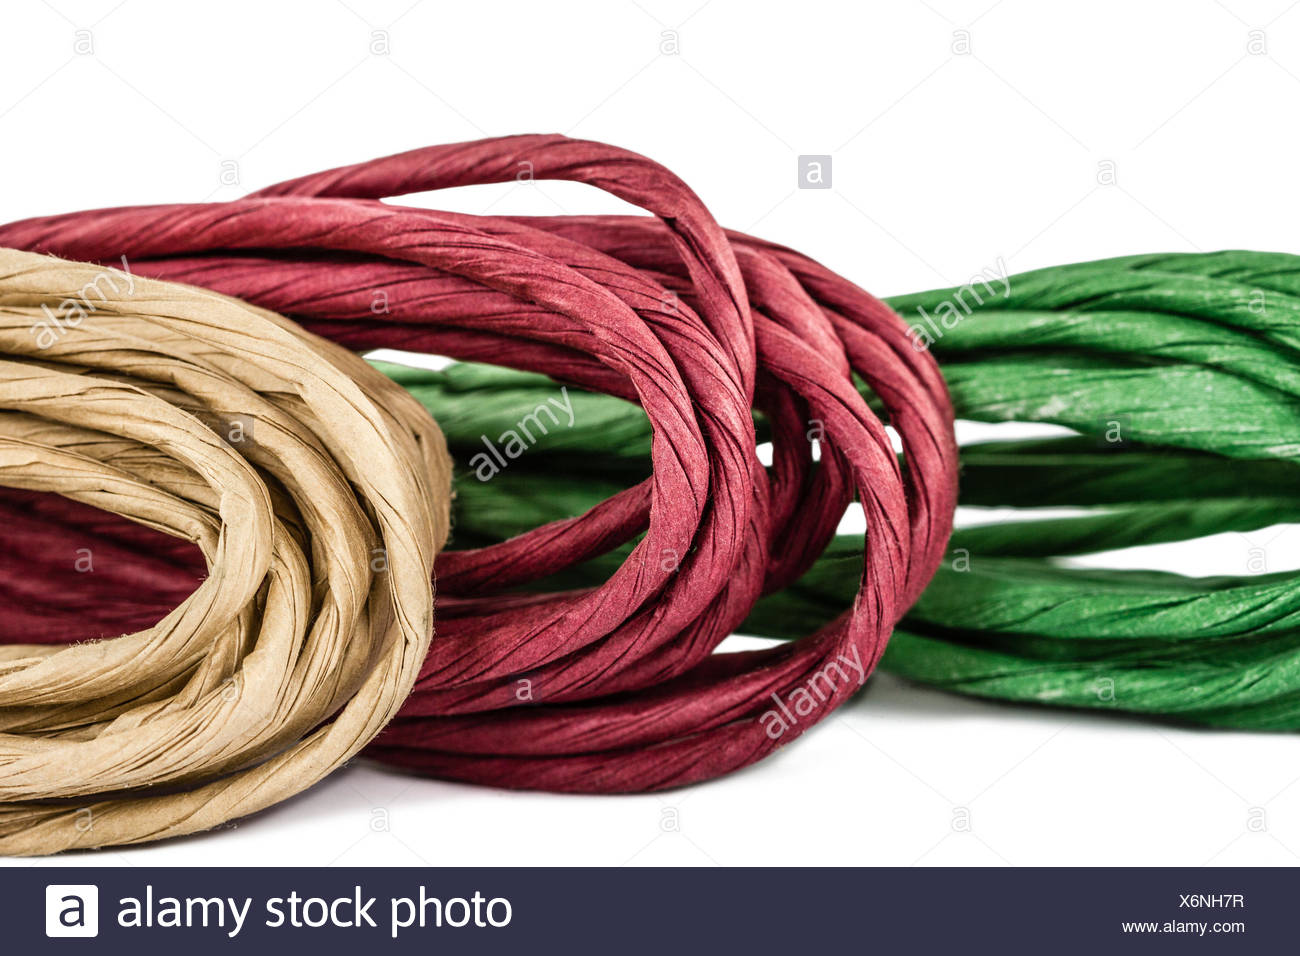 Rope in skeins, isolated on white background - Stock Image